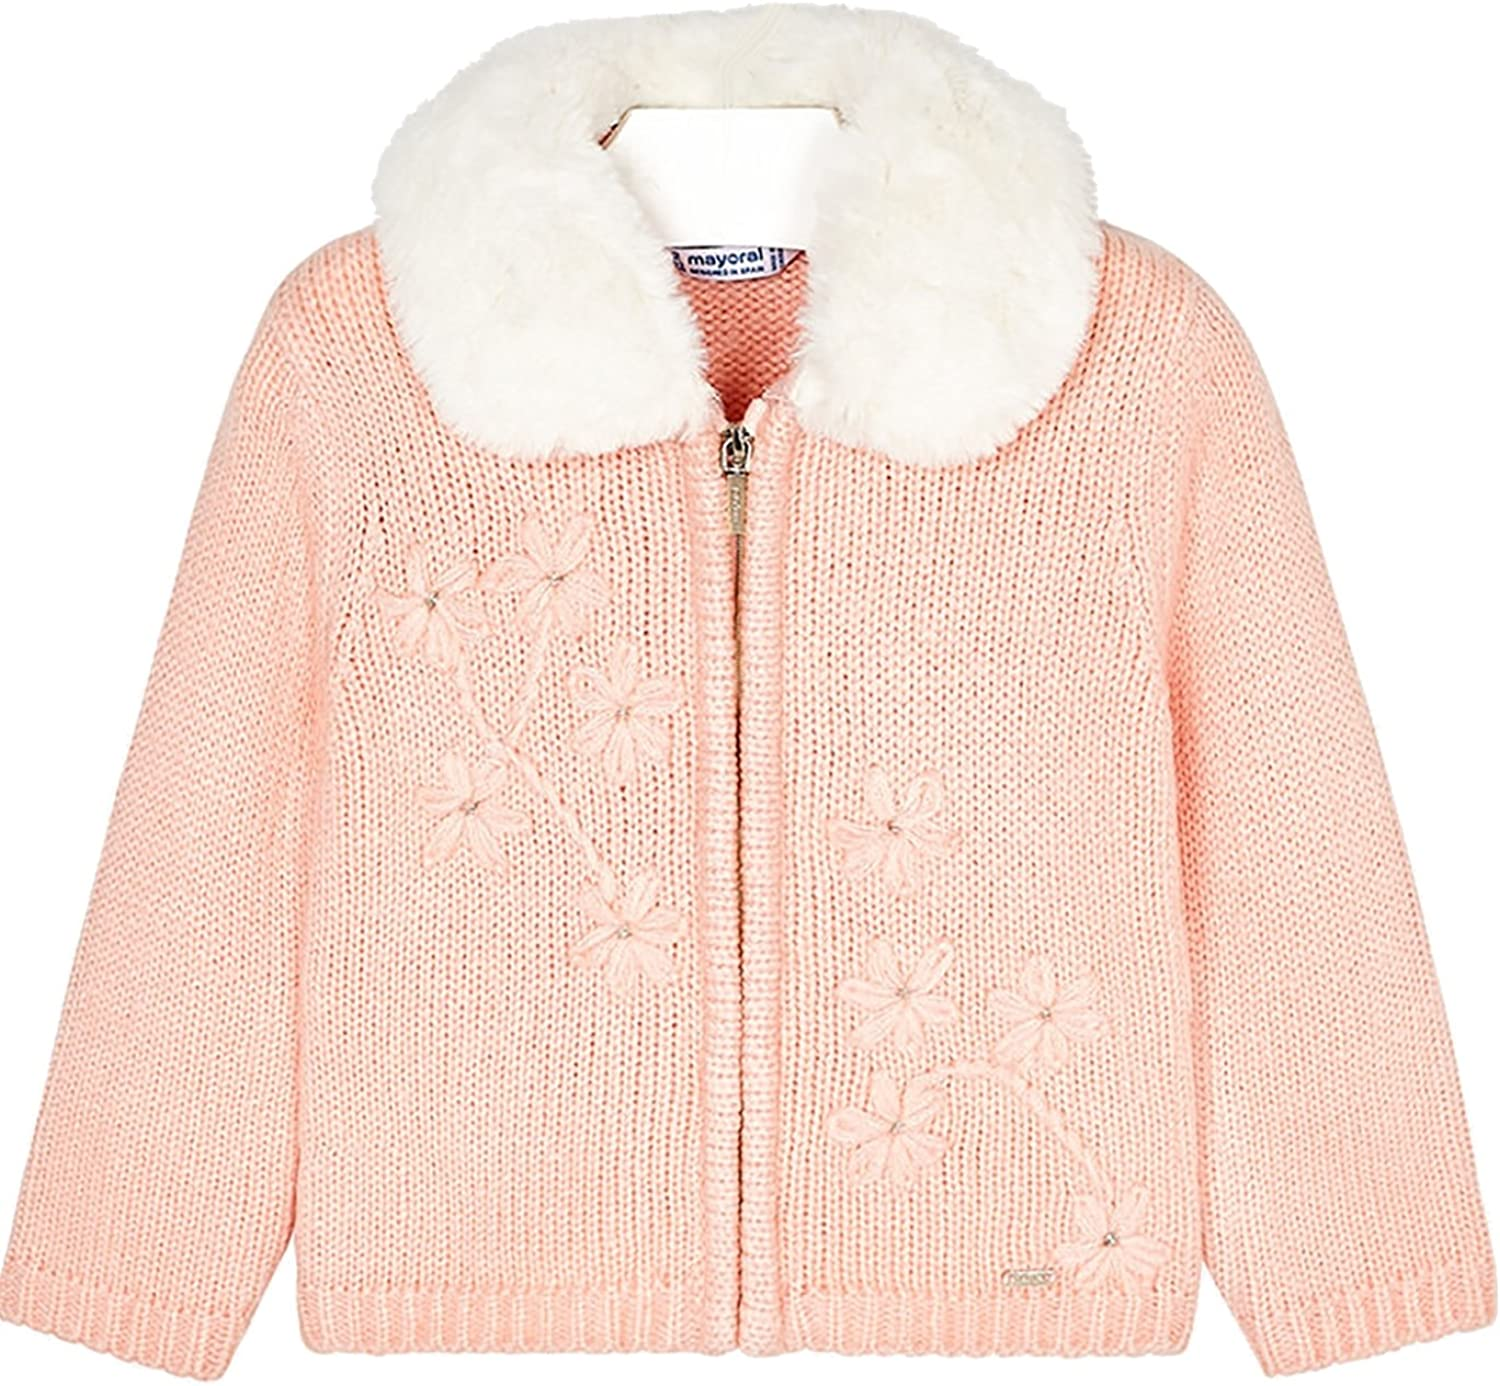 Mayoral - Knitting Pullover for Girls - 4340, Nude